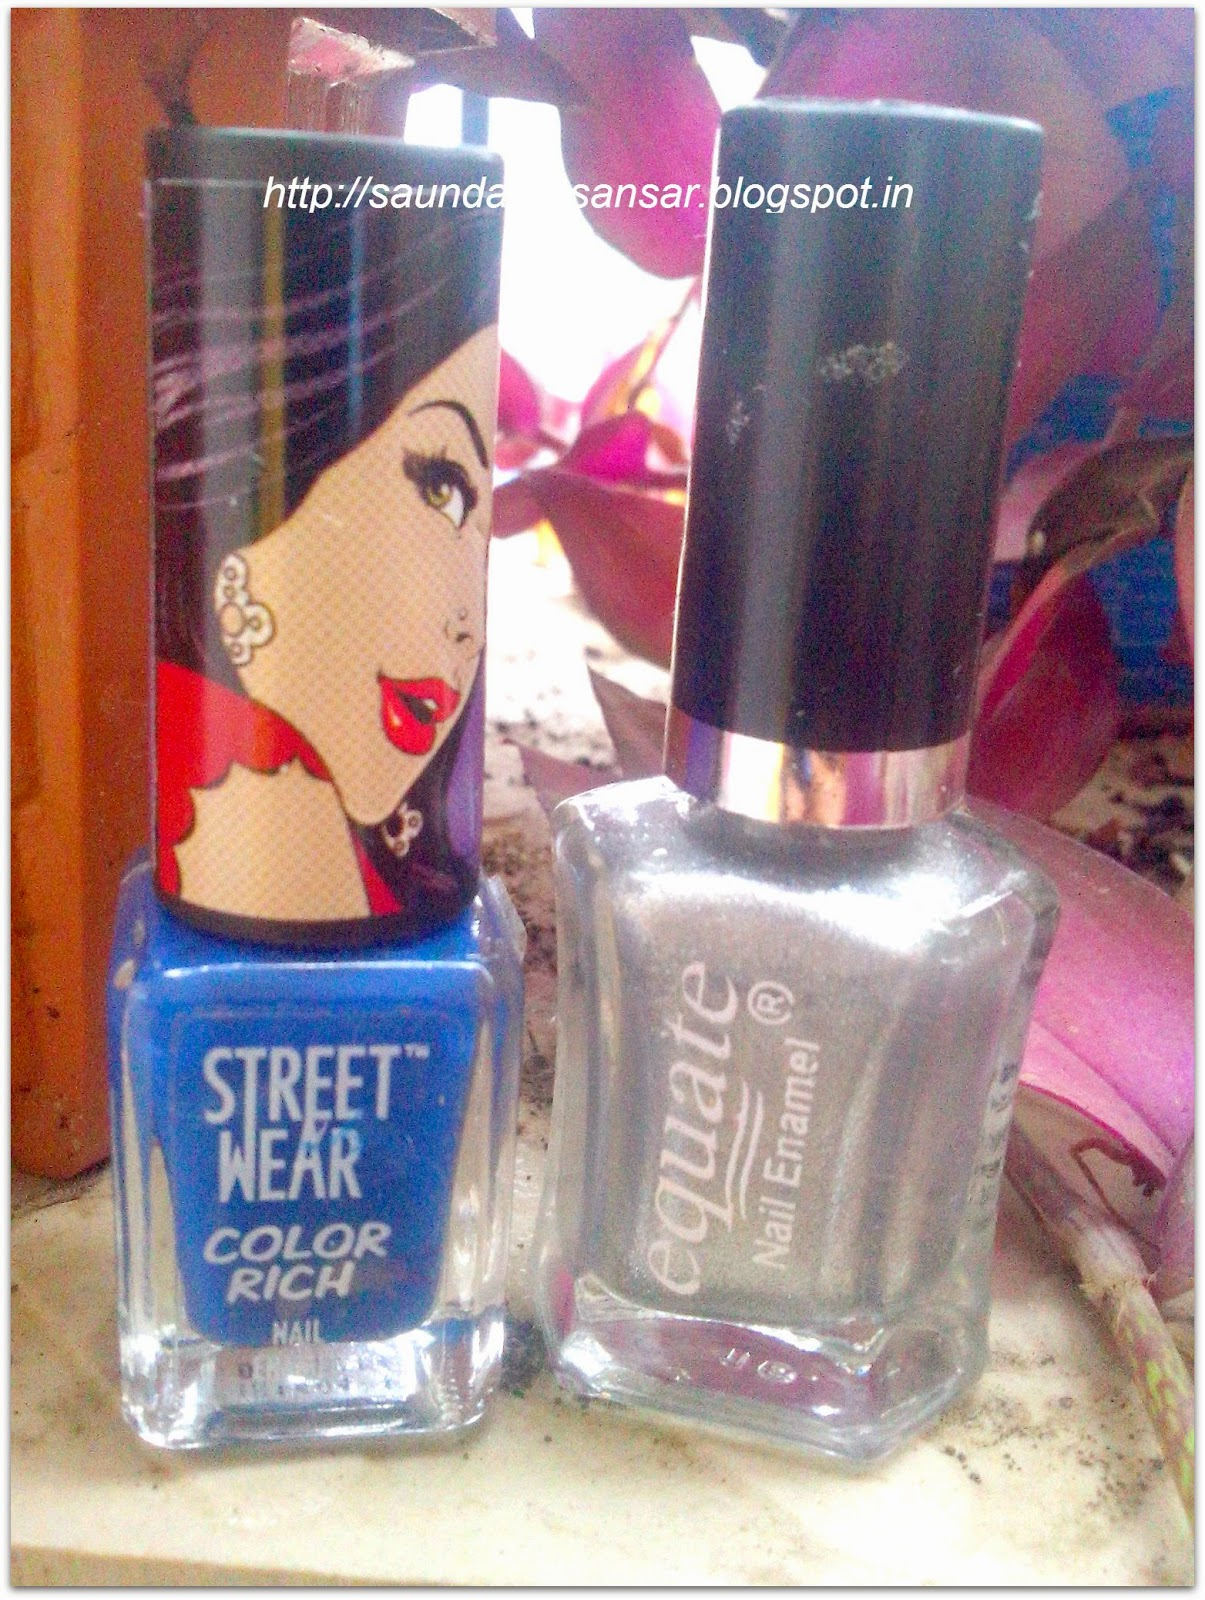 Street Wear Color Rich and Equate Nail Enamel, Bottles, review